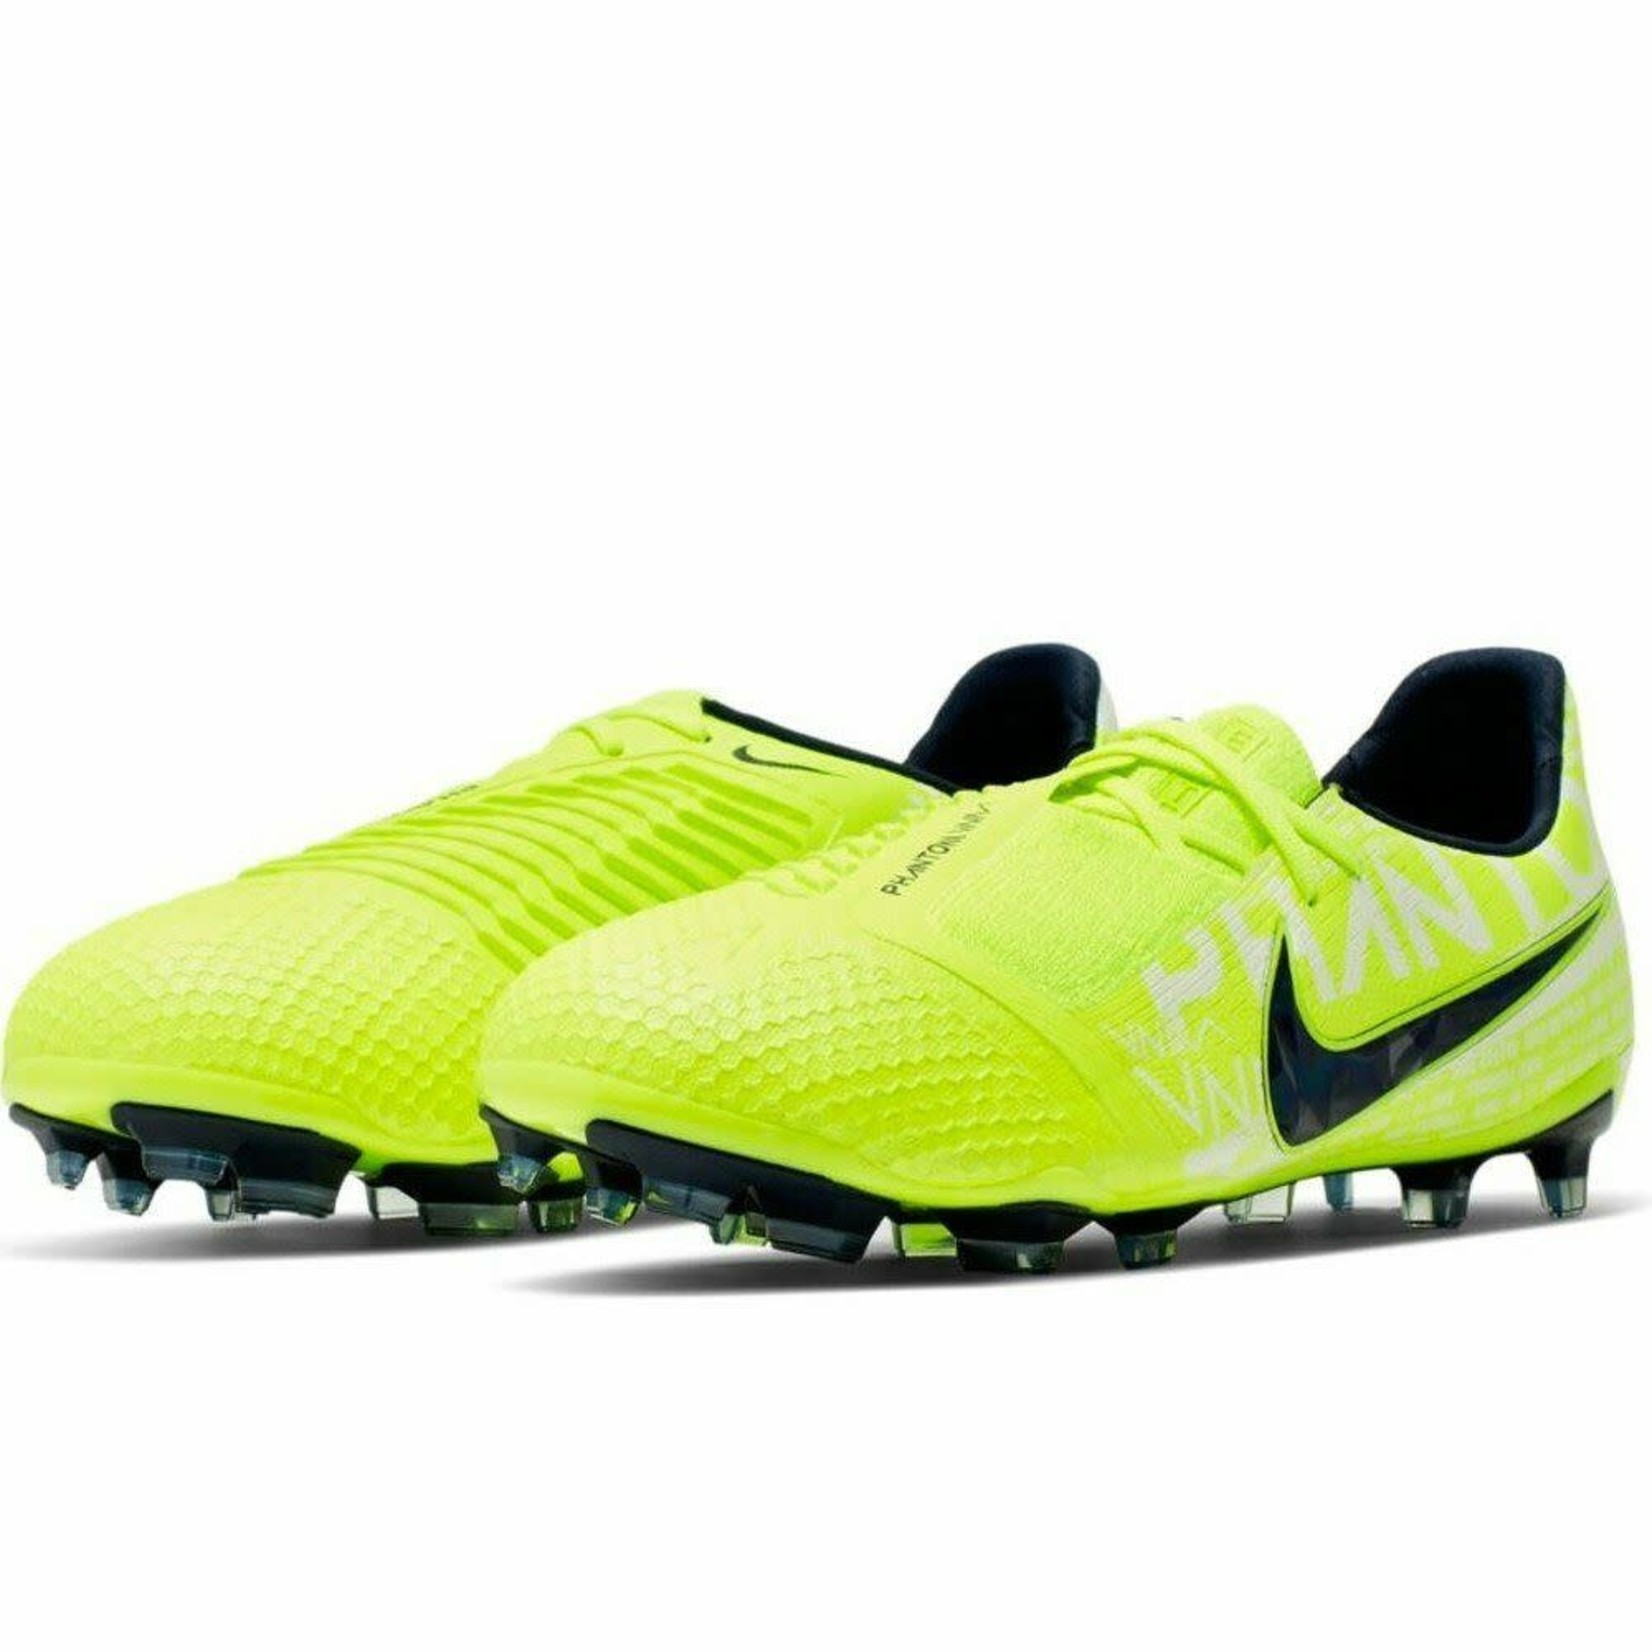 NIKE PHANTOM VENOM ELITE FG JR (VOLT)